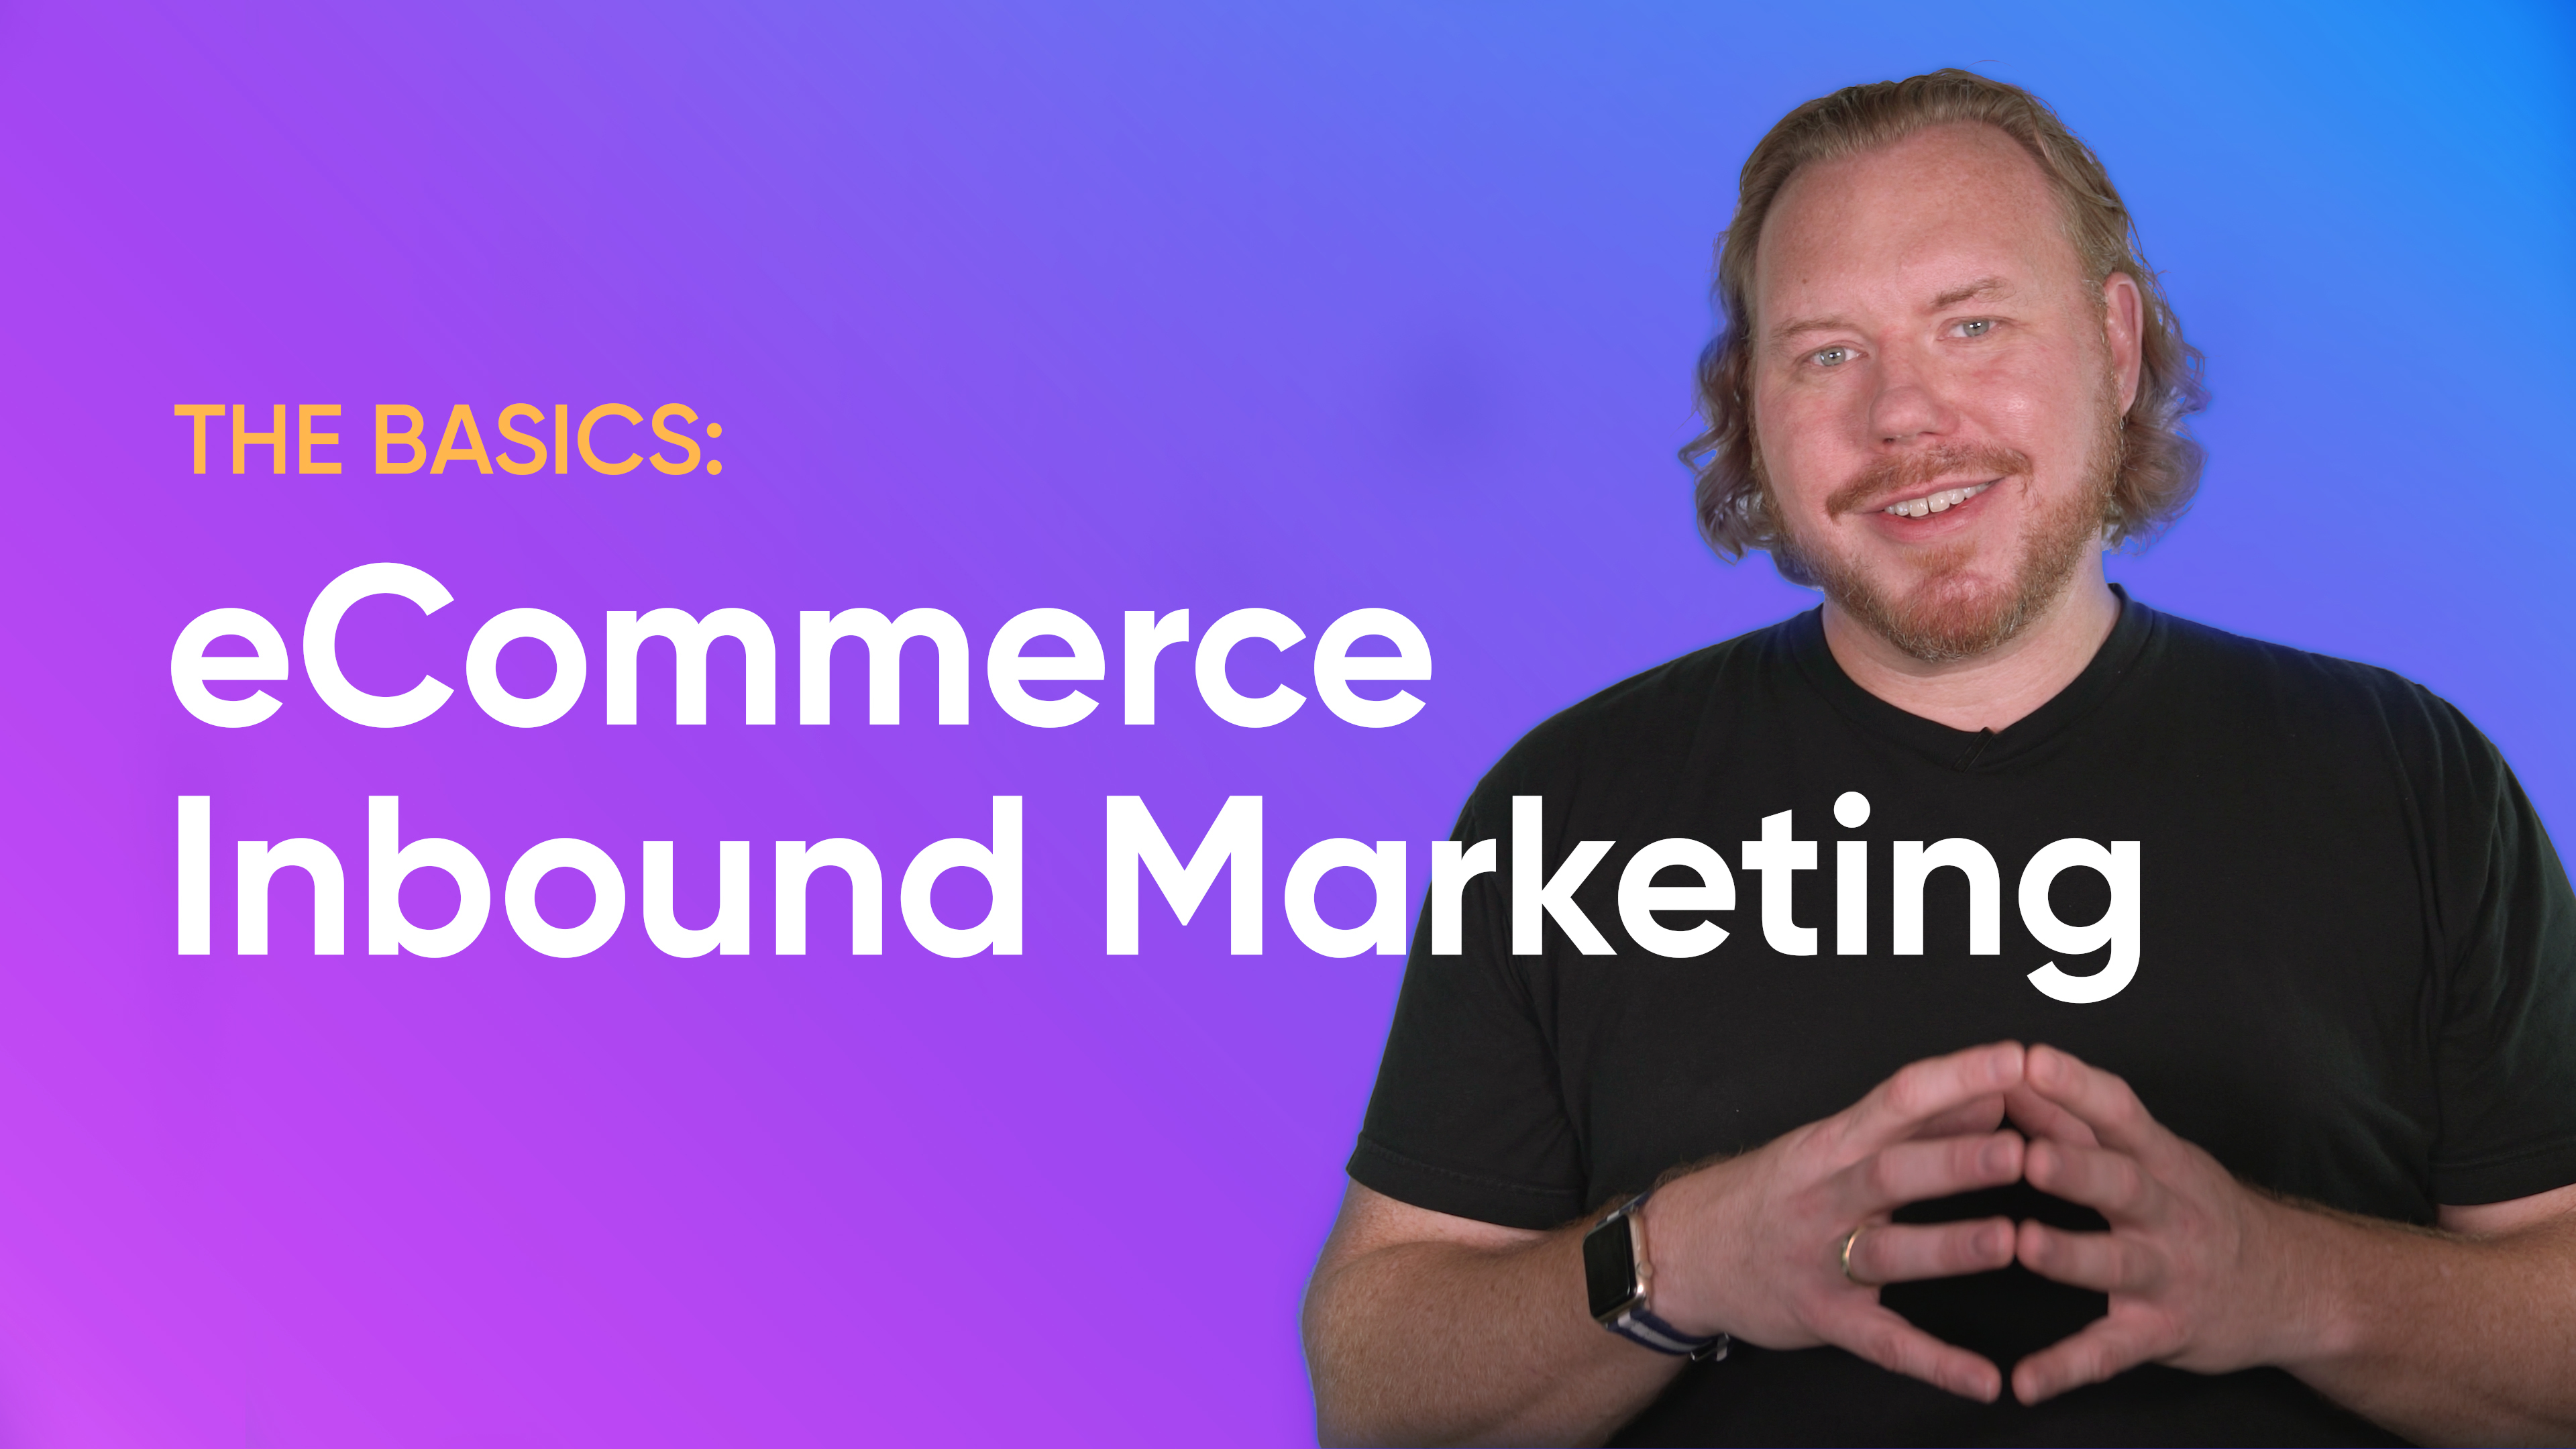 ecommerce-inbound-marketing-basics